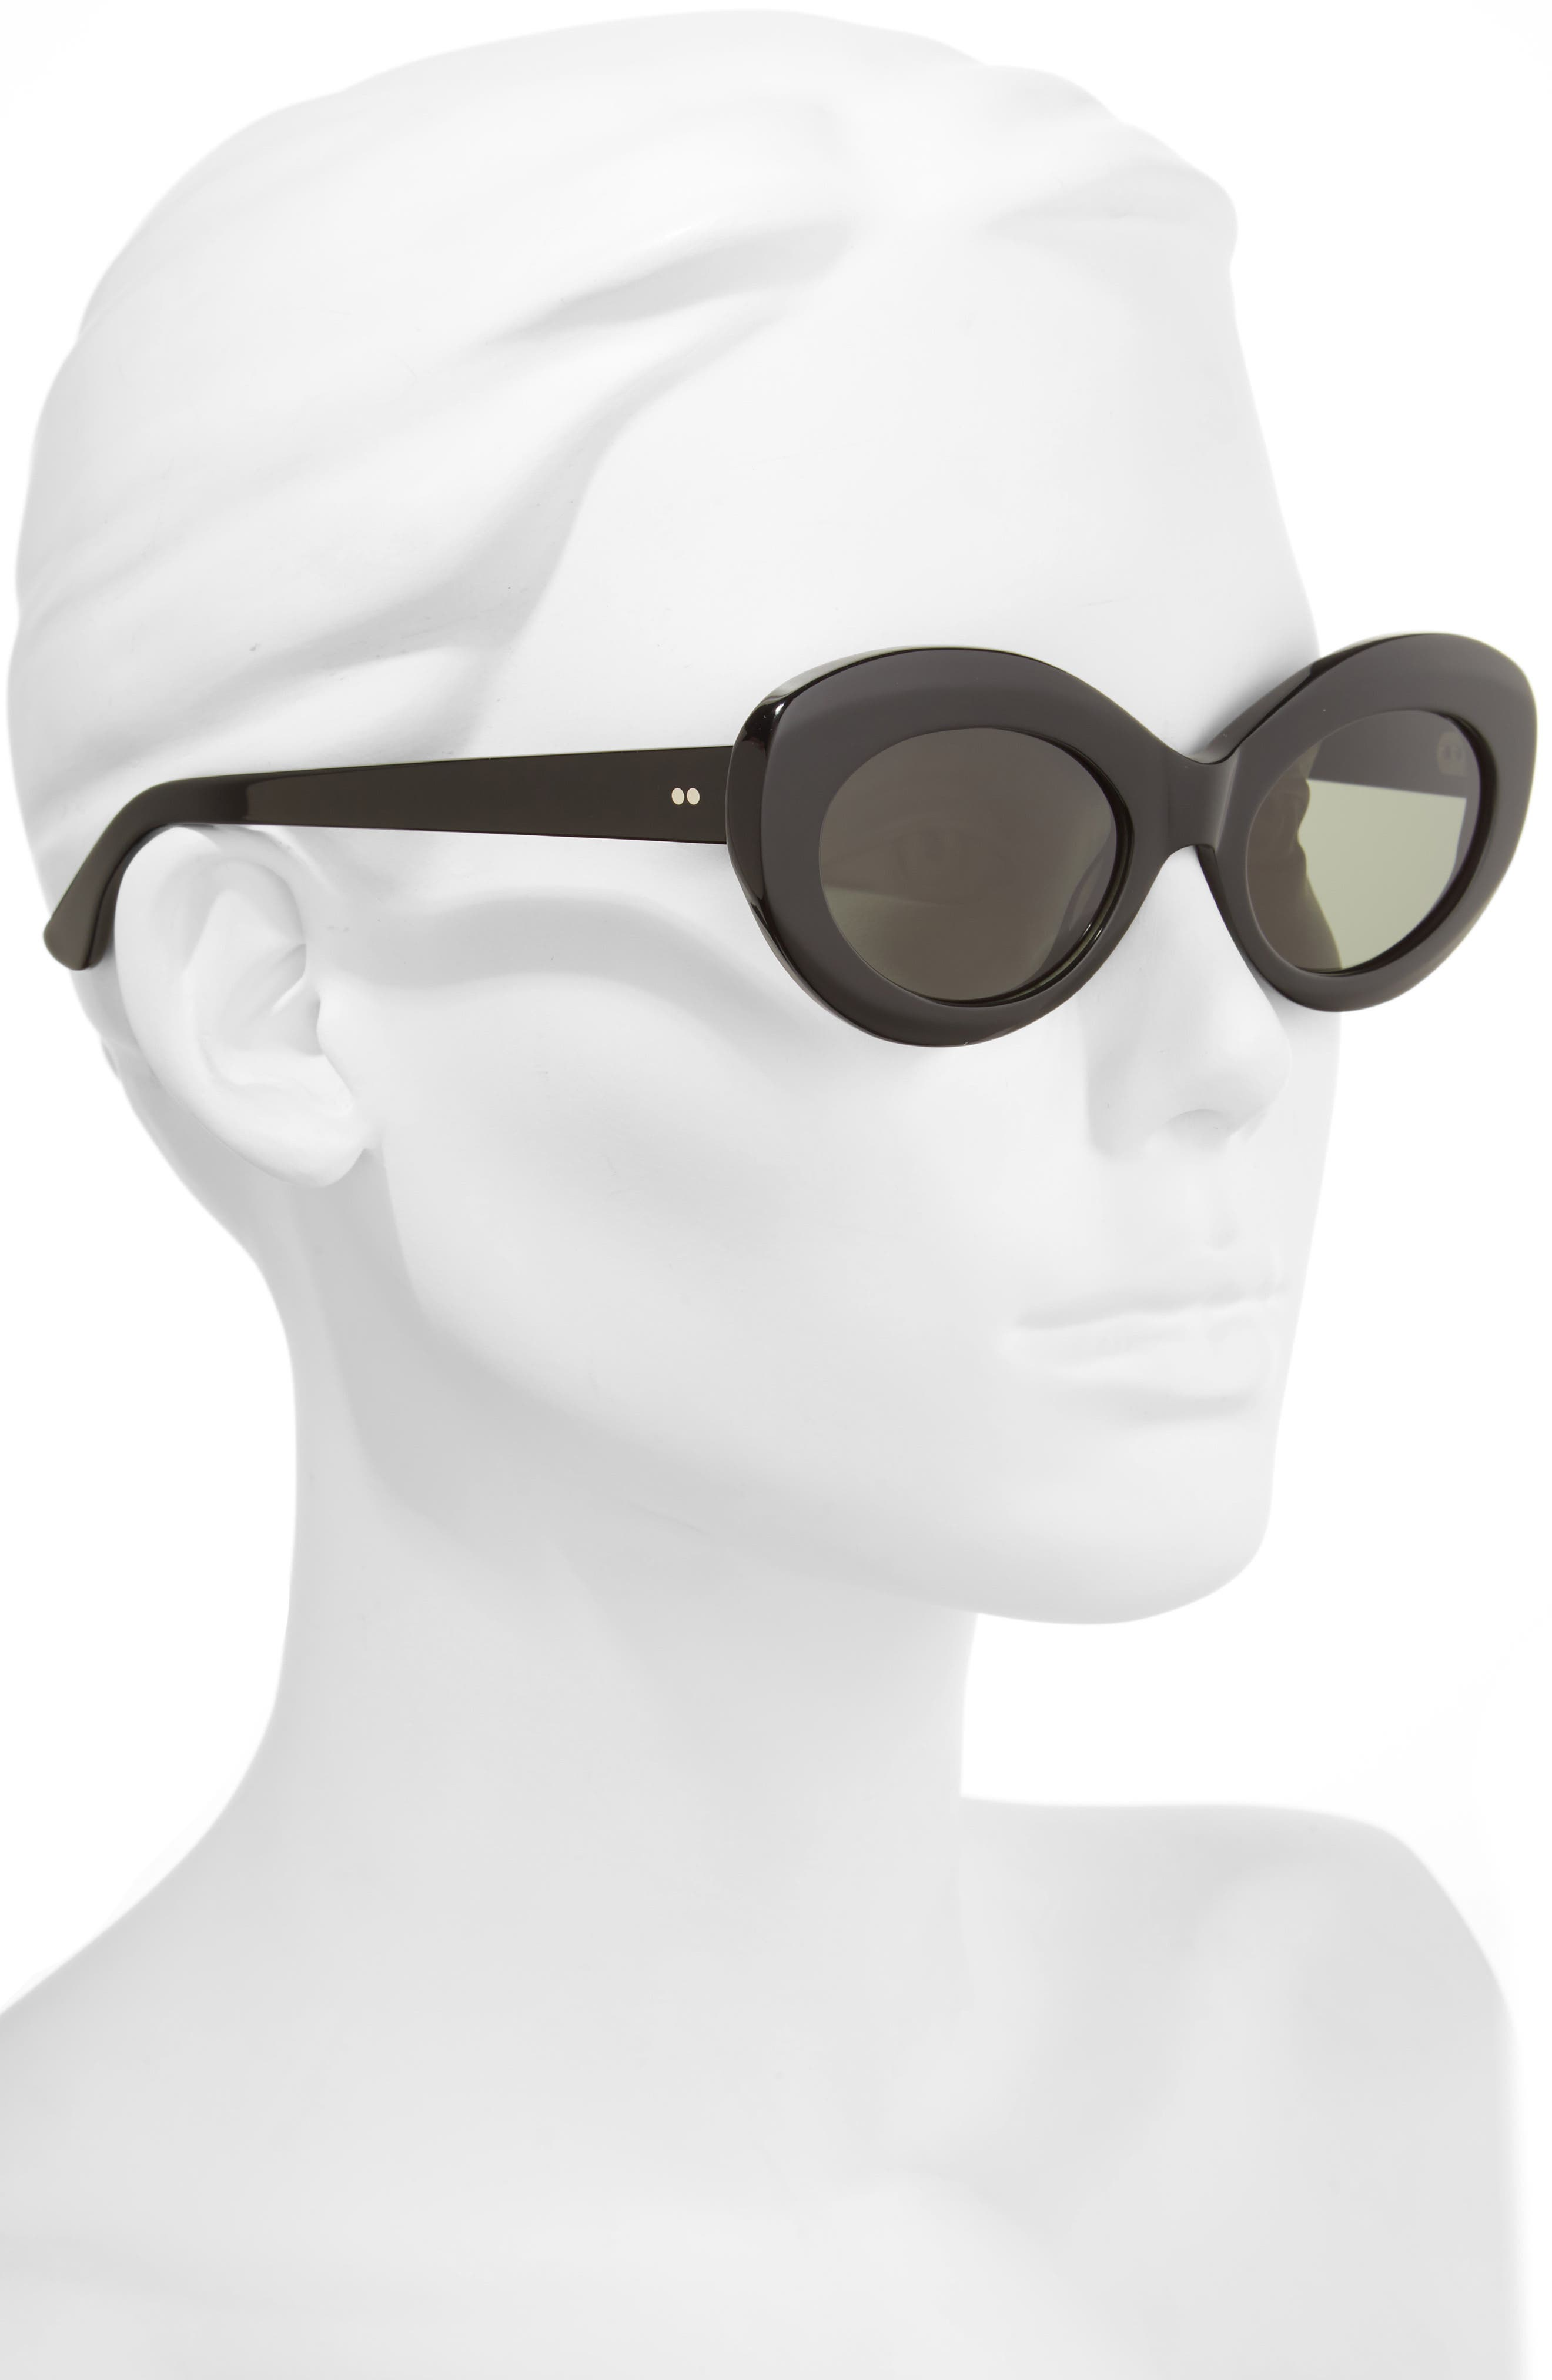 x Alex Knost Luxury Wig Ashtray 53mm Sunglasses,                             Alternate thumbnail 2, color,                             001